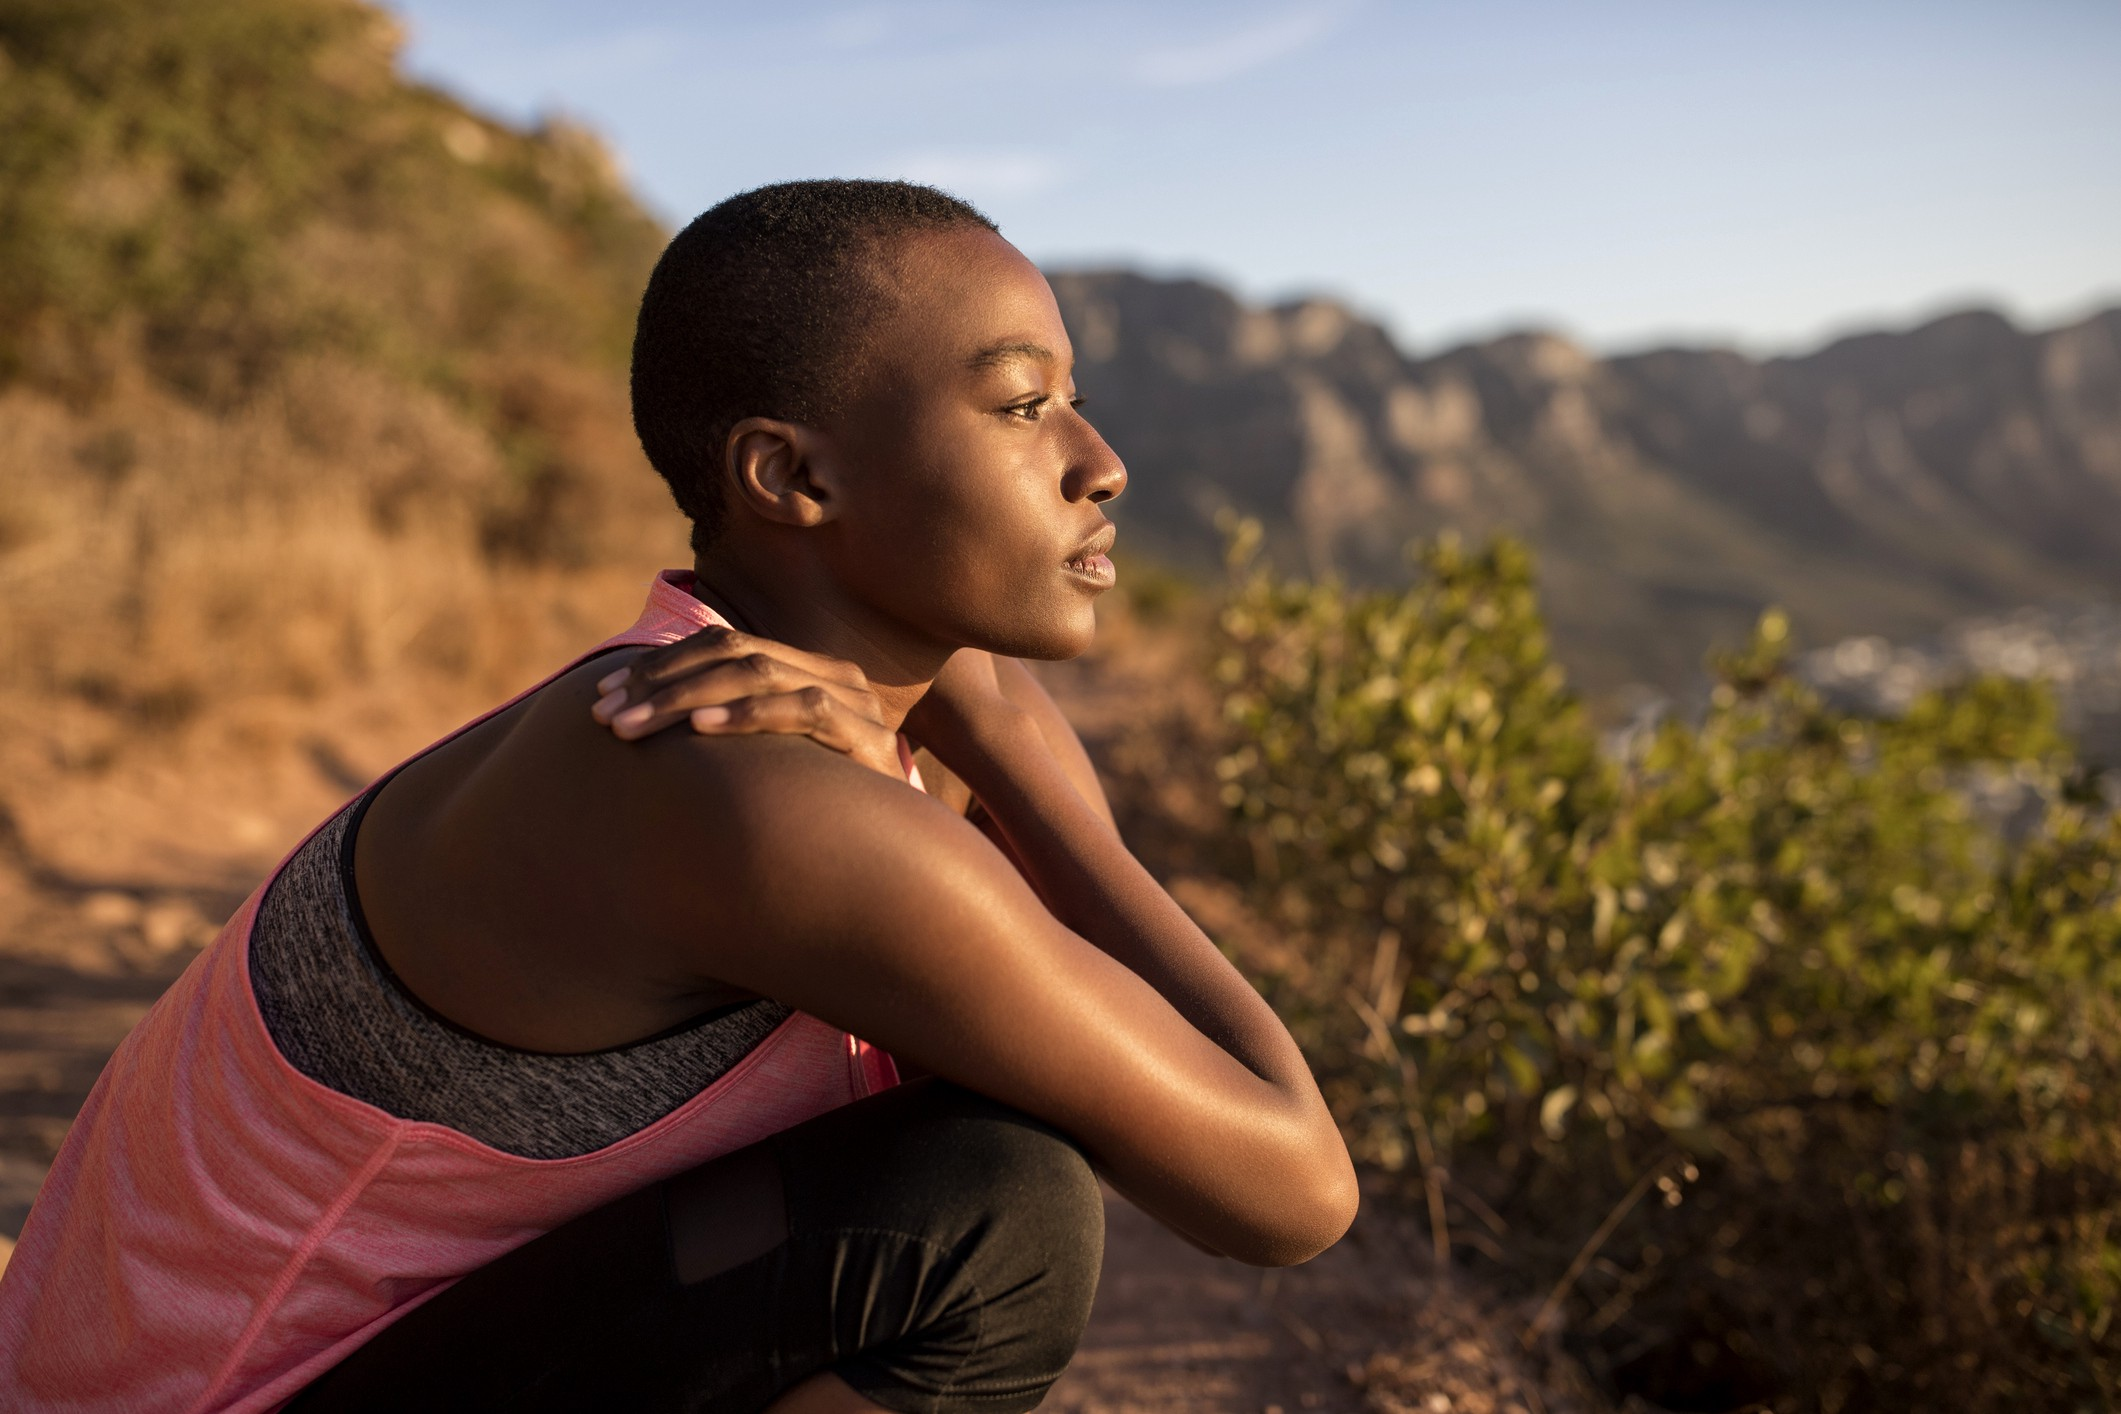 A photo of a peaceful black woman looking out at the view while taking a break on a hike.